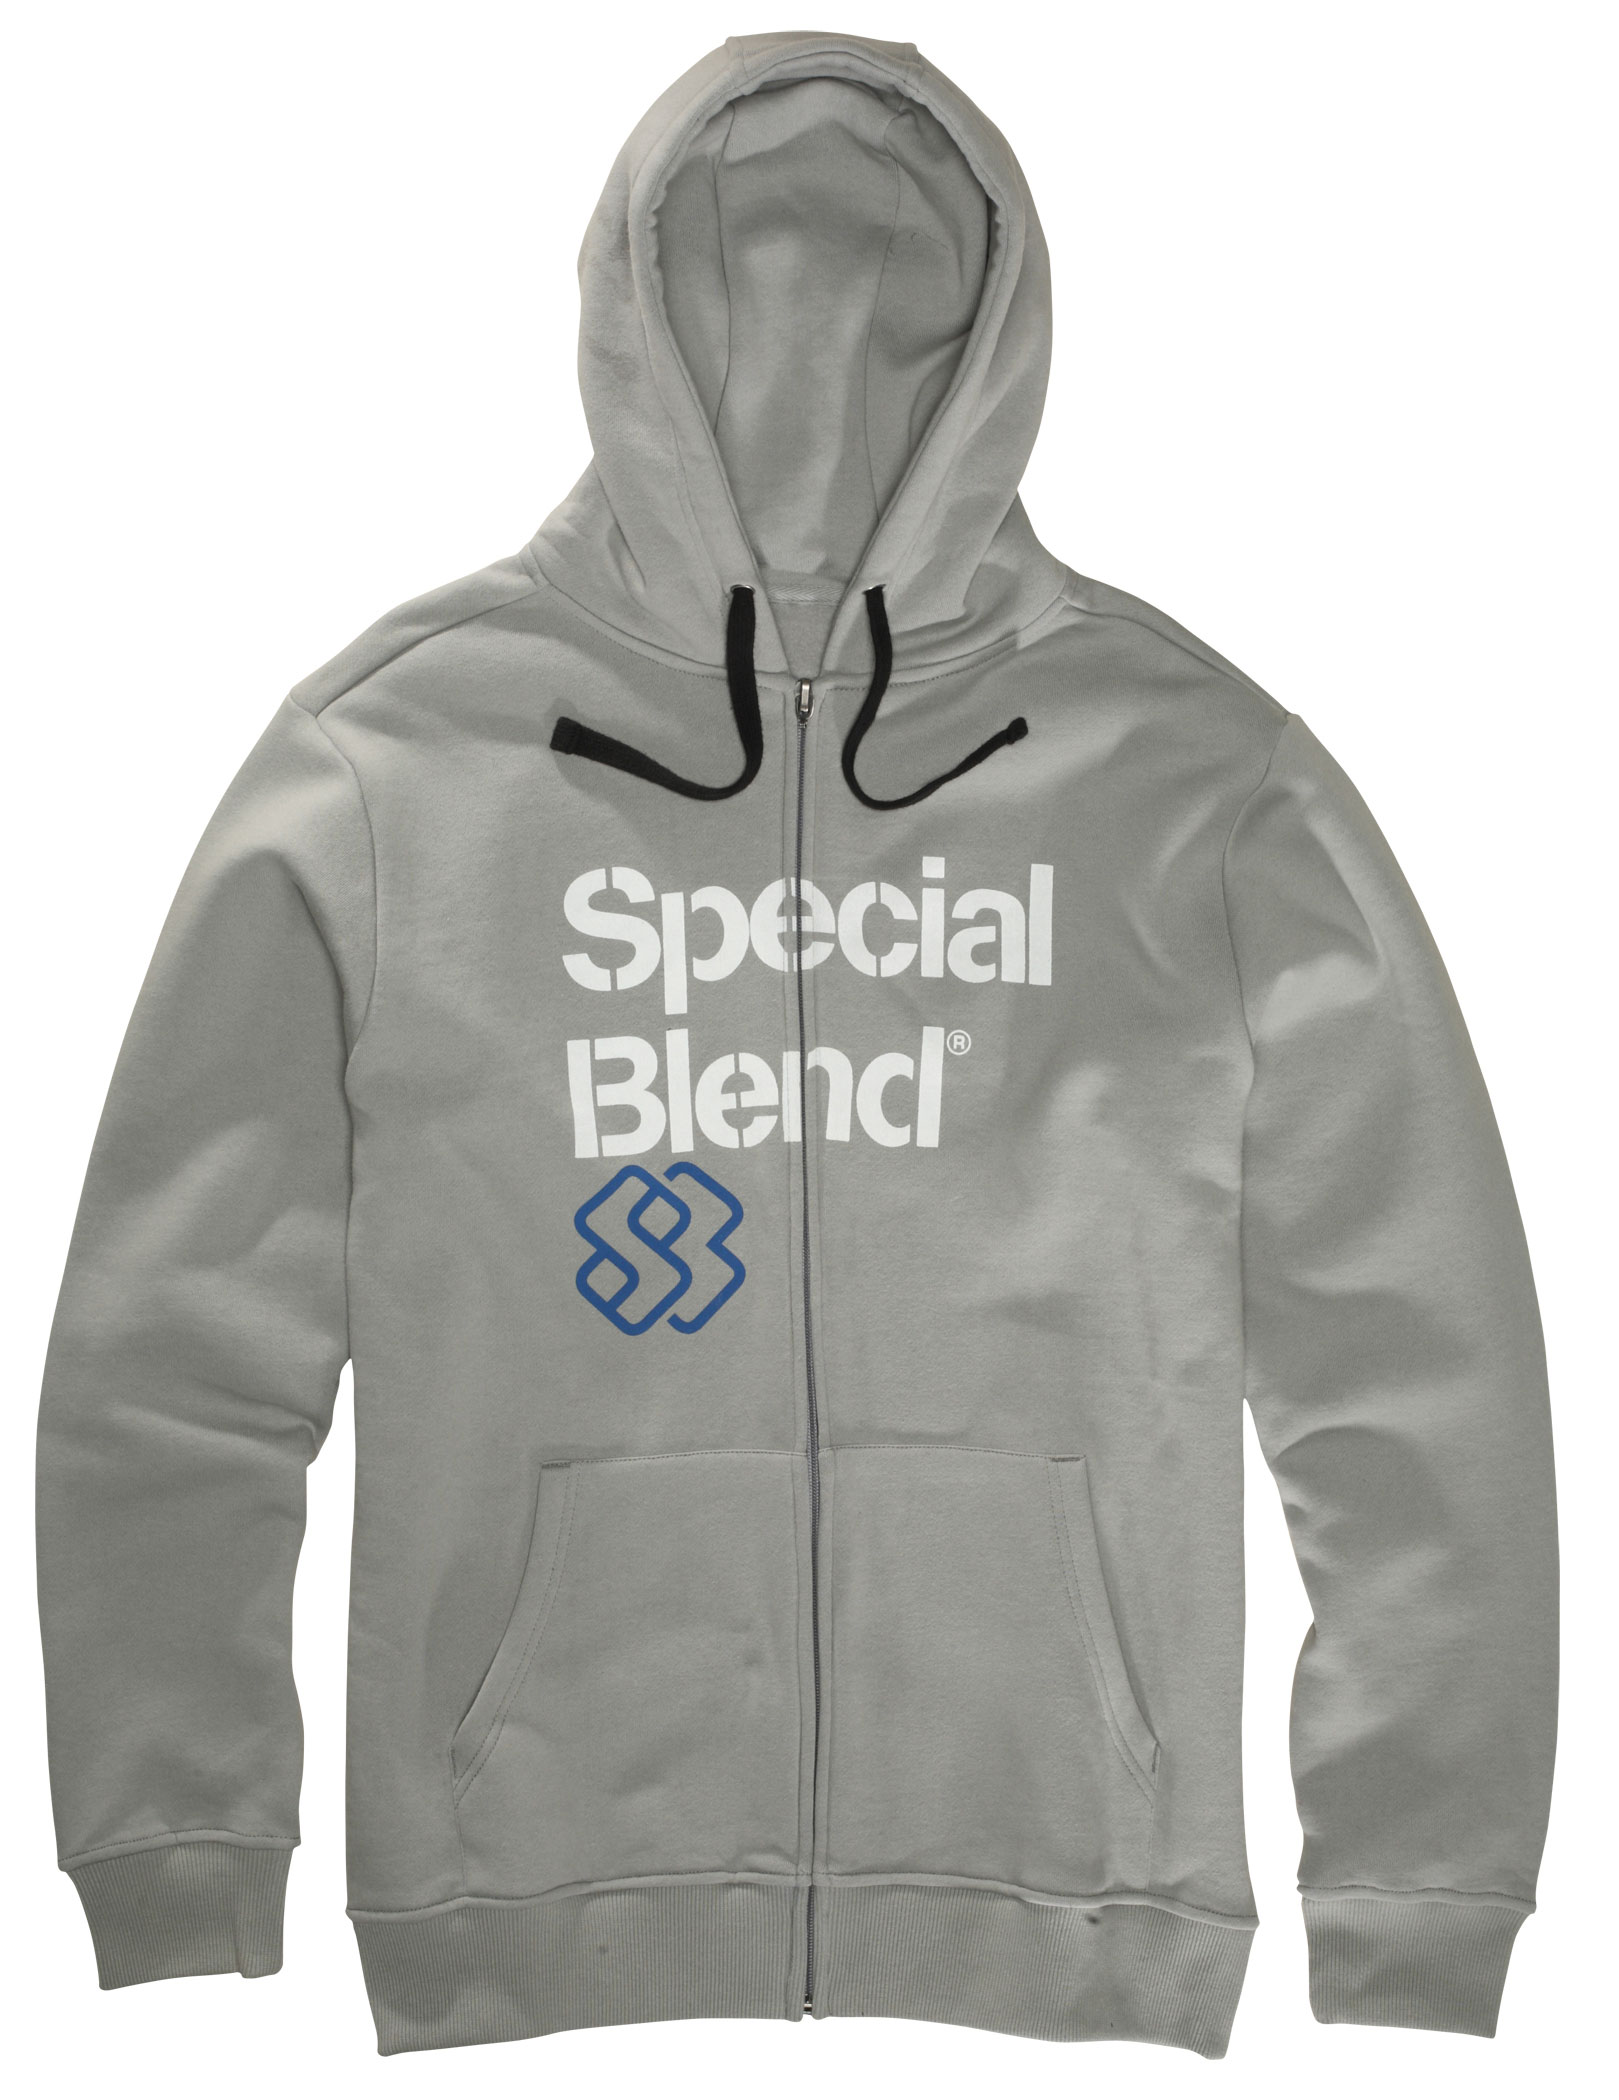 The Special Blend Principal Fullzip Hoodie is made with cotton and polyester featuring a fleece lined hood made with 100% cotton. So comfortable to the touch, wear it all winter long and layer it with your favorite shirt. With its zip up feature, be sure to put it on and off with ease making this the practical hoodie to own. Keep yourself warm and bundle up in the Special Blend Principal Fullzip Hoodie this season.Key Features of the Special Blend Principal Fullzip Hoodie: Freedom fit 80% cotton 20% polyester, 300 gms. 100% cotton jersey hood lining. - $19.95